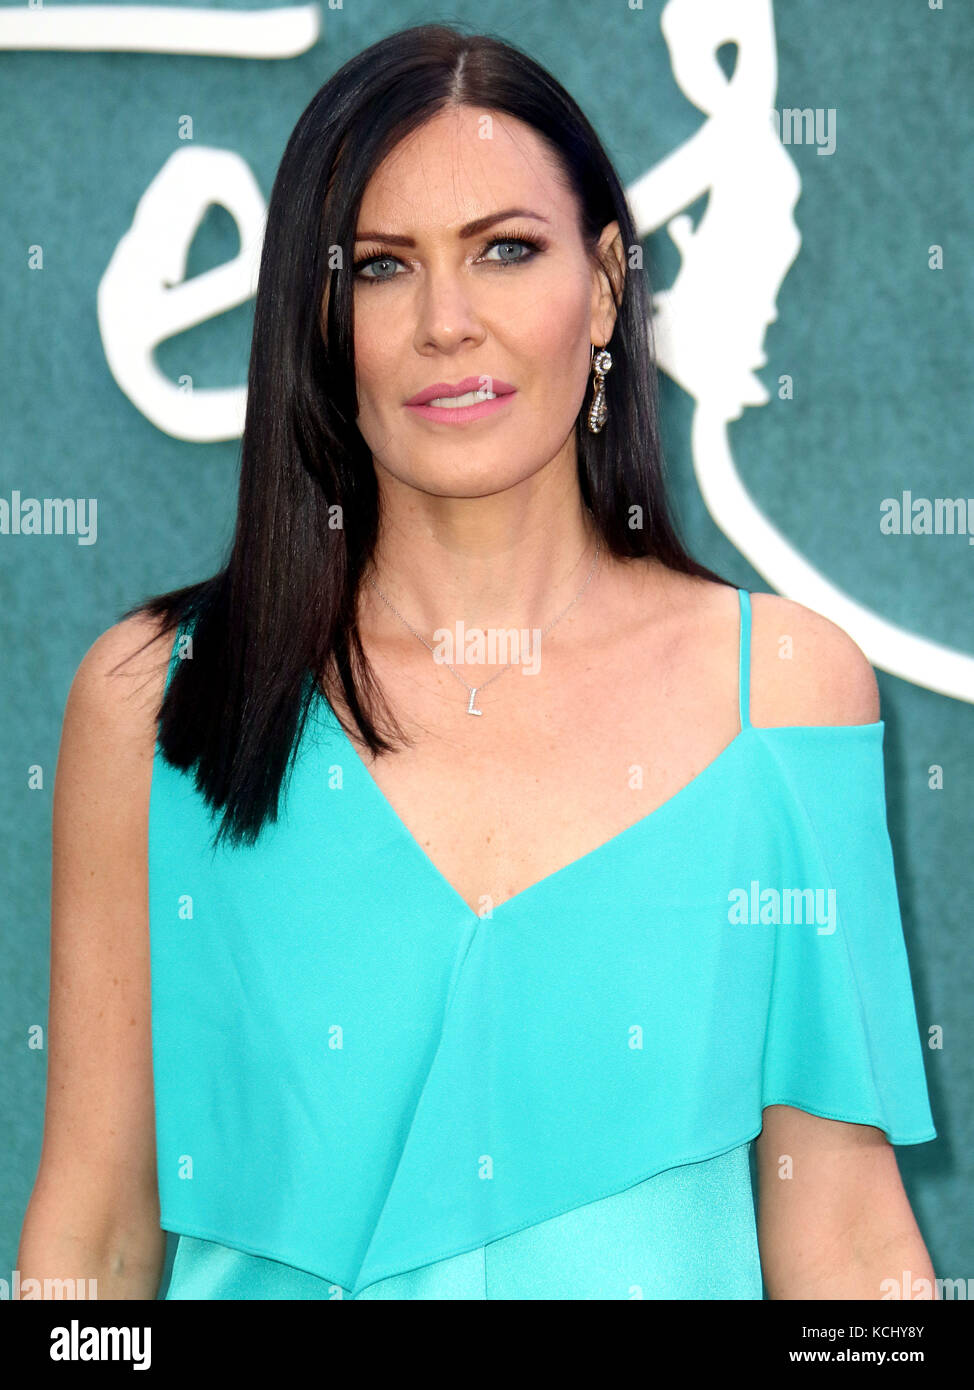 Sep 06, 2017 - Linzi Stoppard attending 'Mother!' UK Premiere, Odeon Leicester Square in London, England, UK Stock Photo